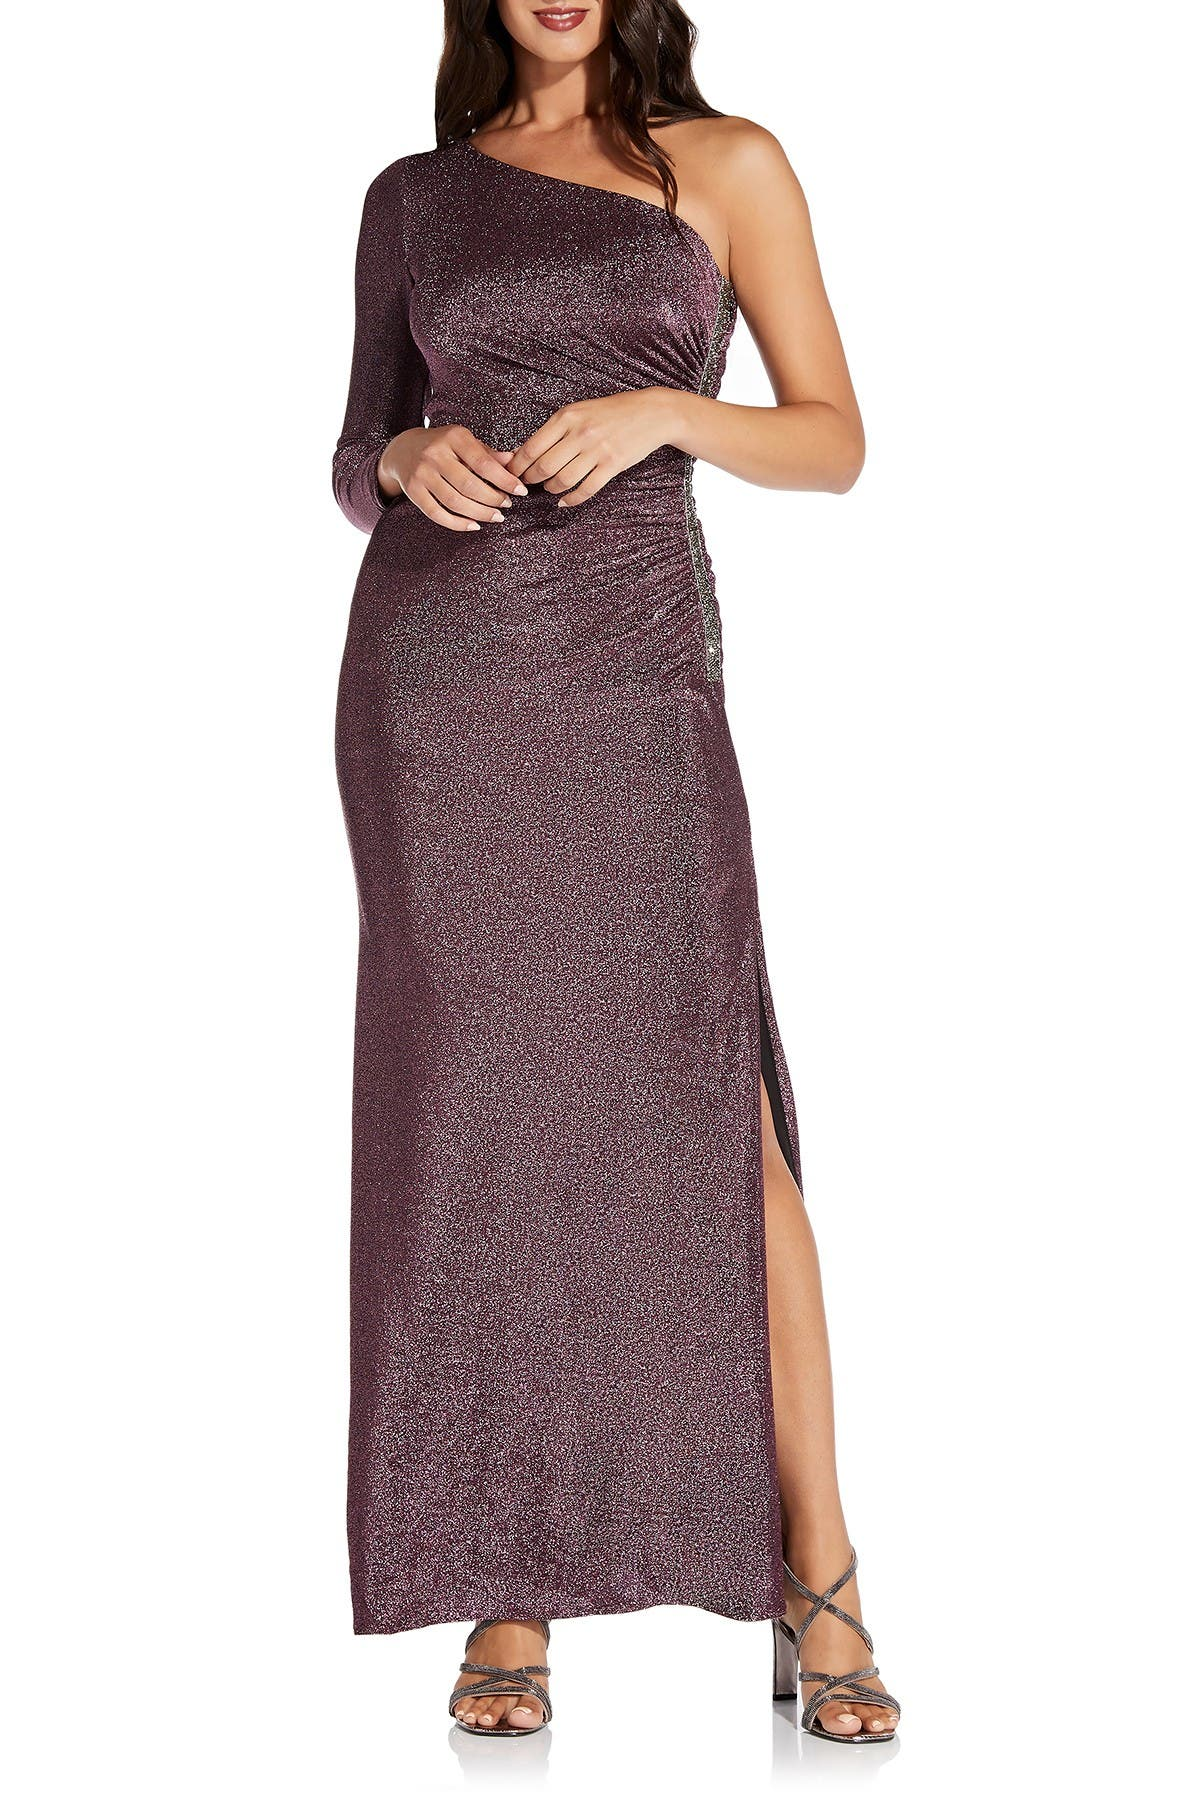 Image of Adrianna Papell Metallic One-Shoulder Dress